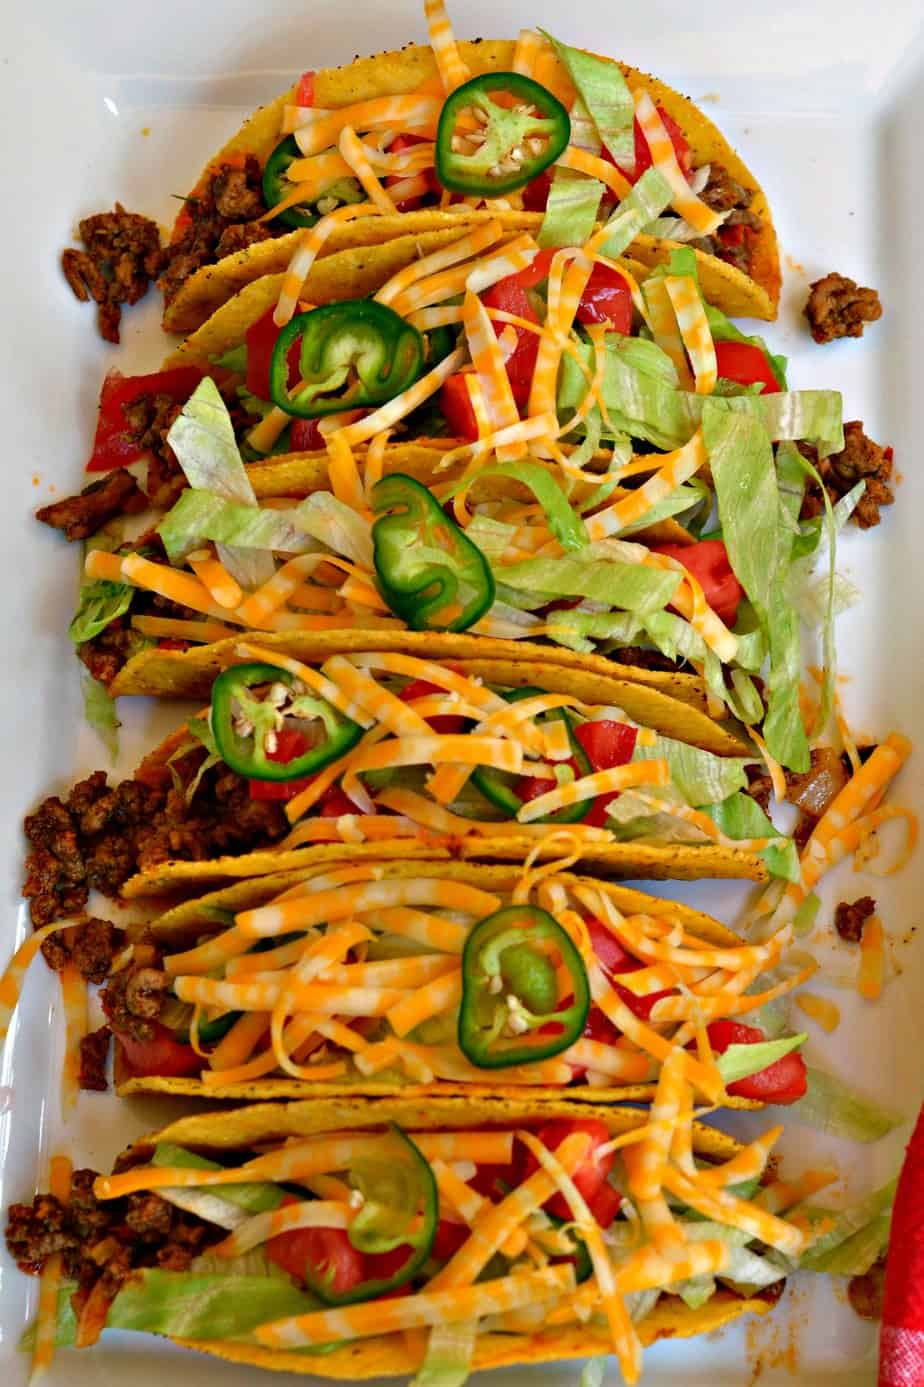 These delicious Ground Beef Tacos are made super easy with lean ground beef and a select handful of spices that you probably have on hand.